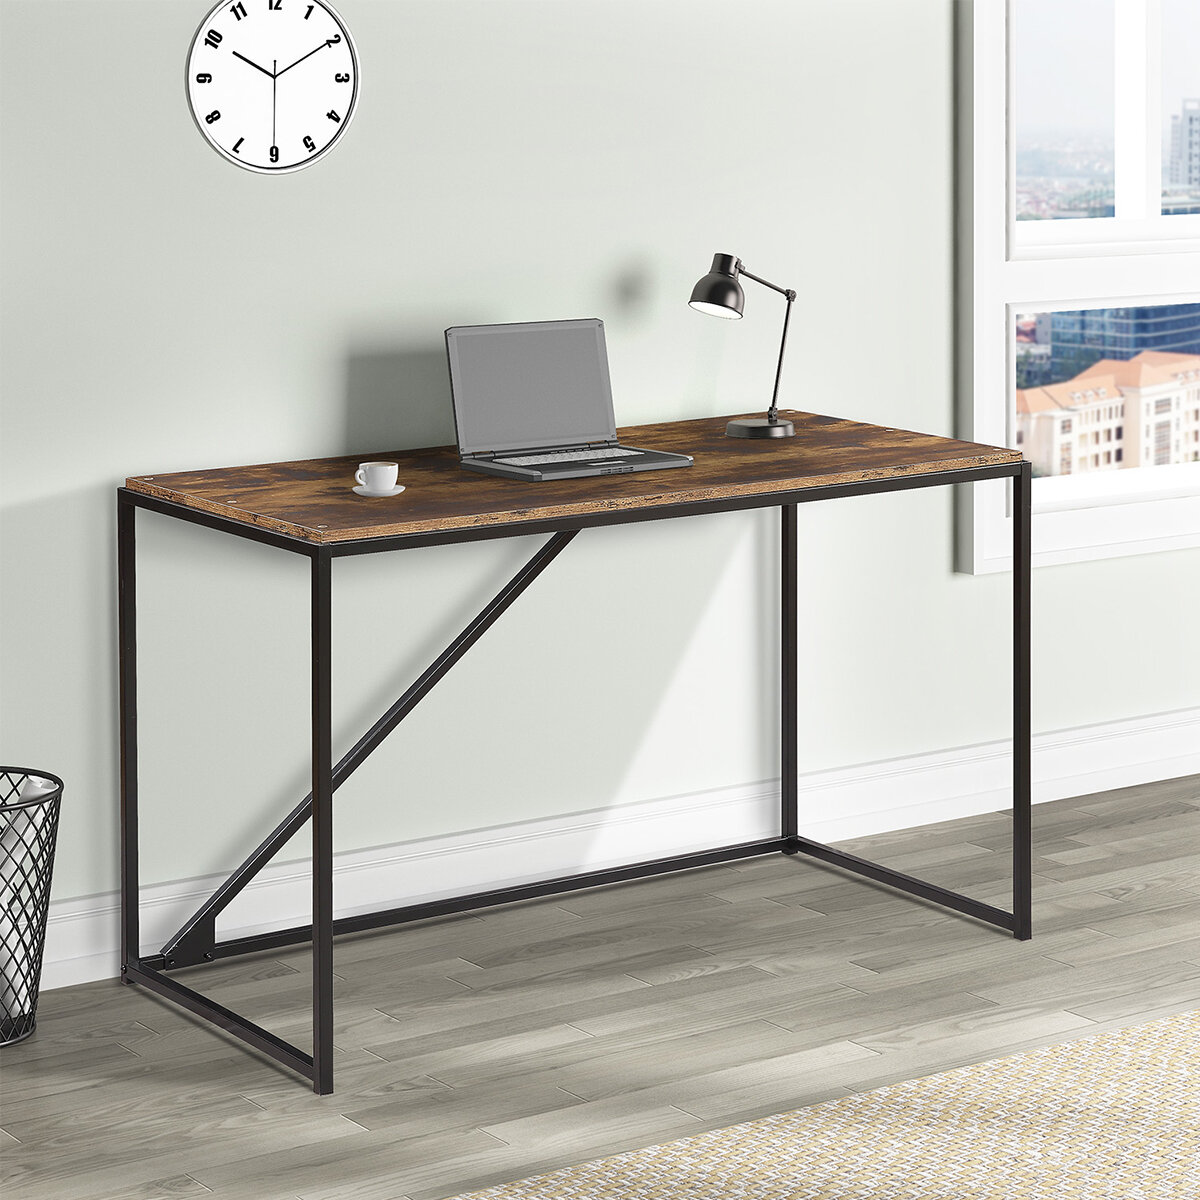 17 Stories Modern Simple Computer Desk Industrial Style Writing Desk Home Office Desk Pc Laptop Table 46 Inch Study Table